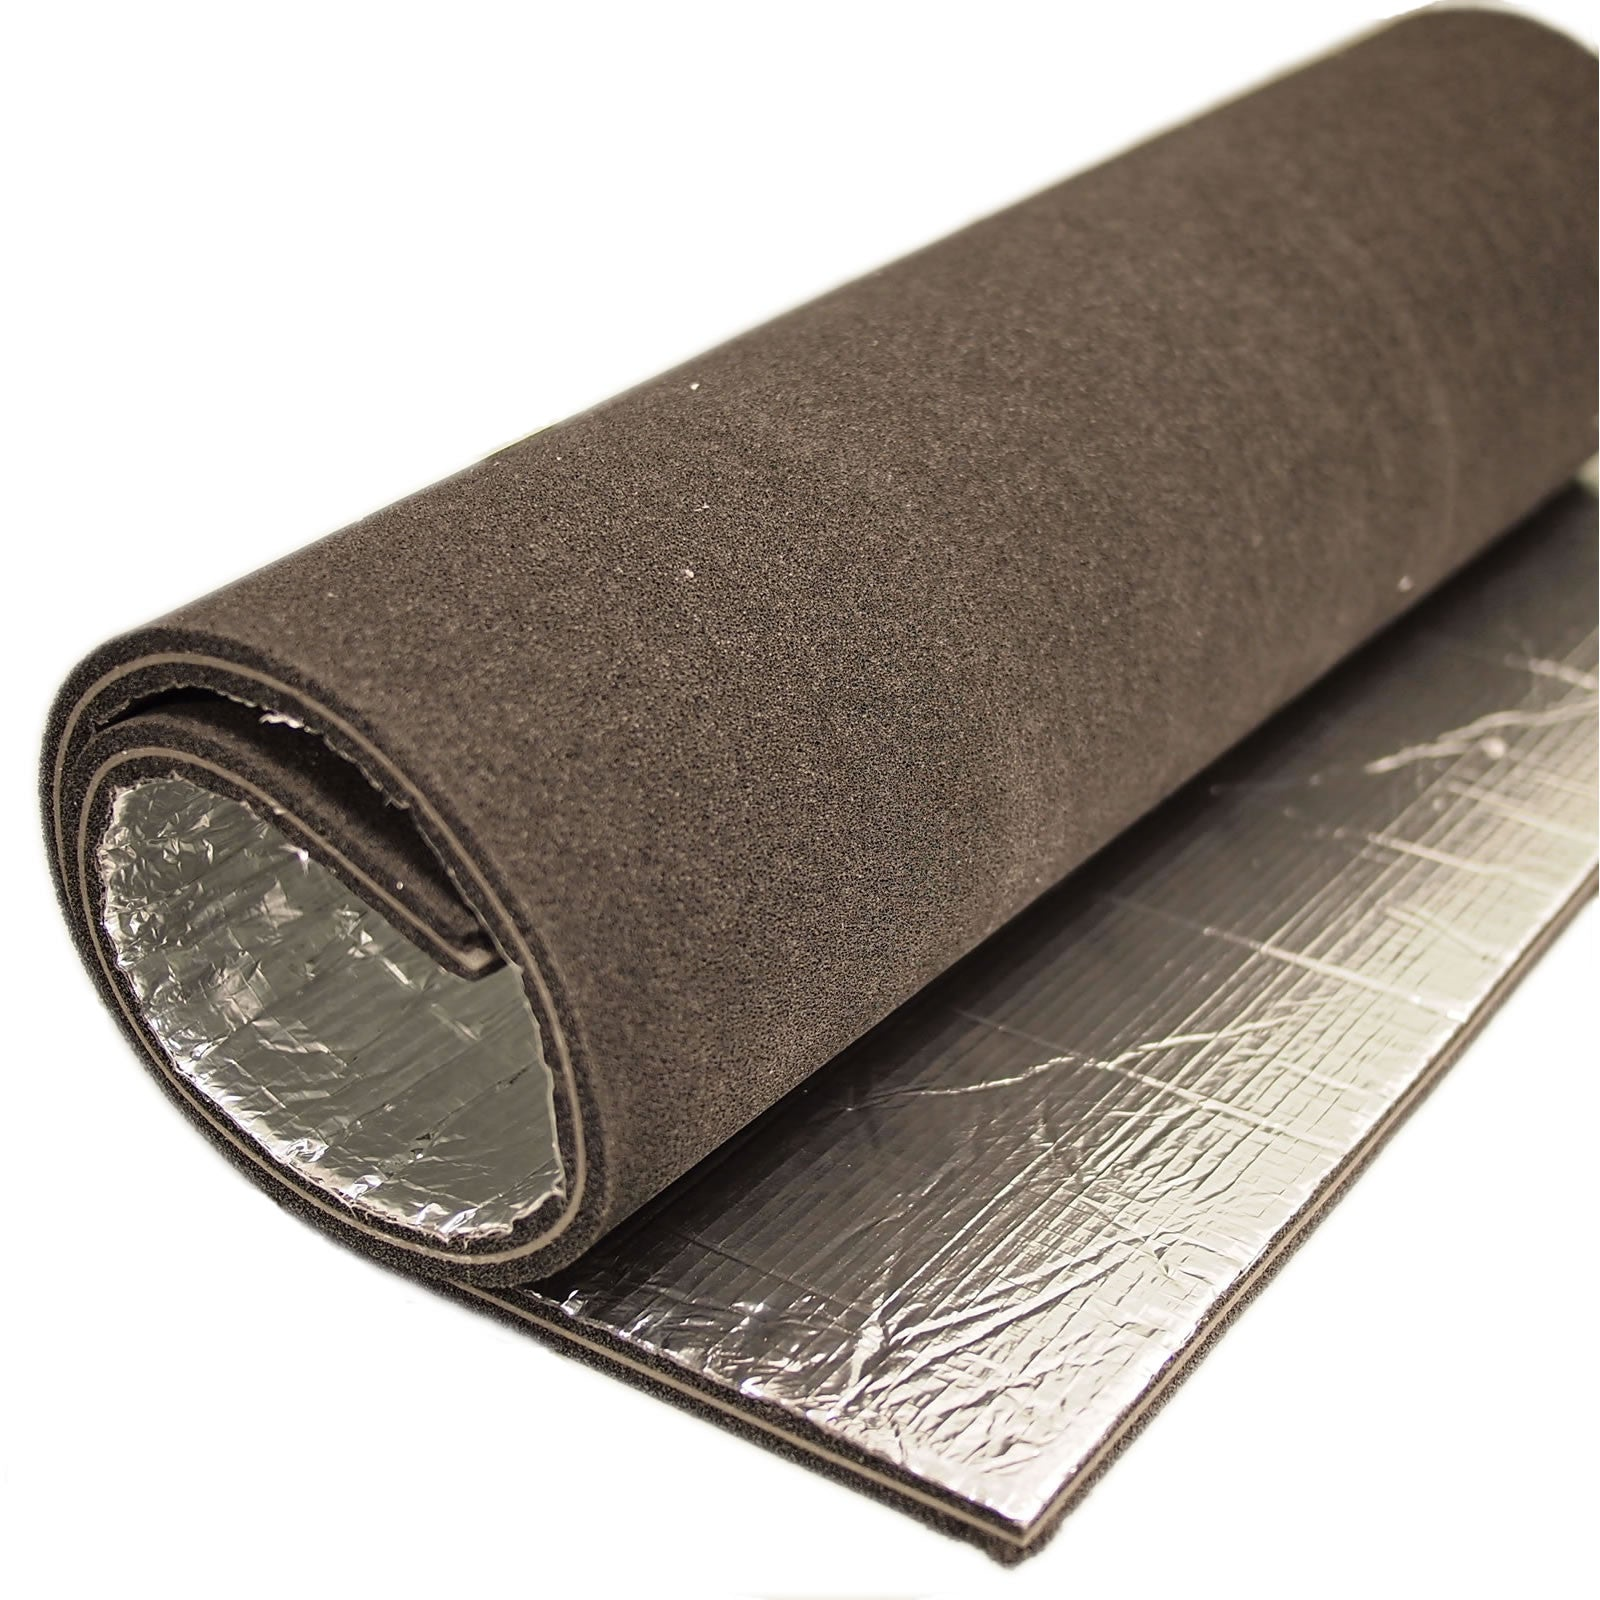 Sound proofing foam sound deadening foam autos post for Best sound barrier insulation